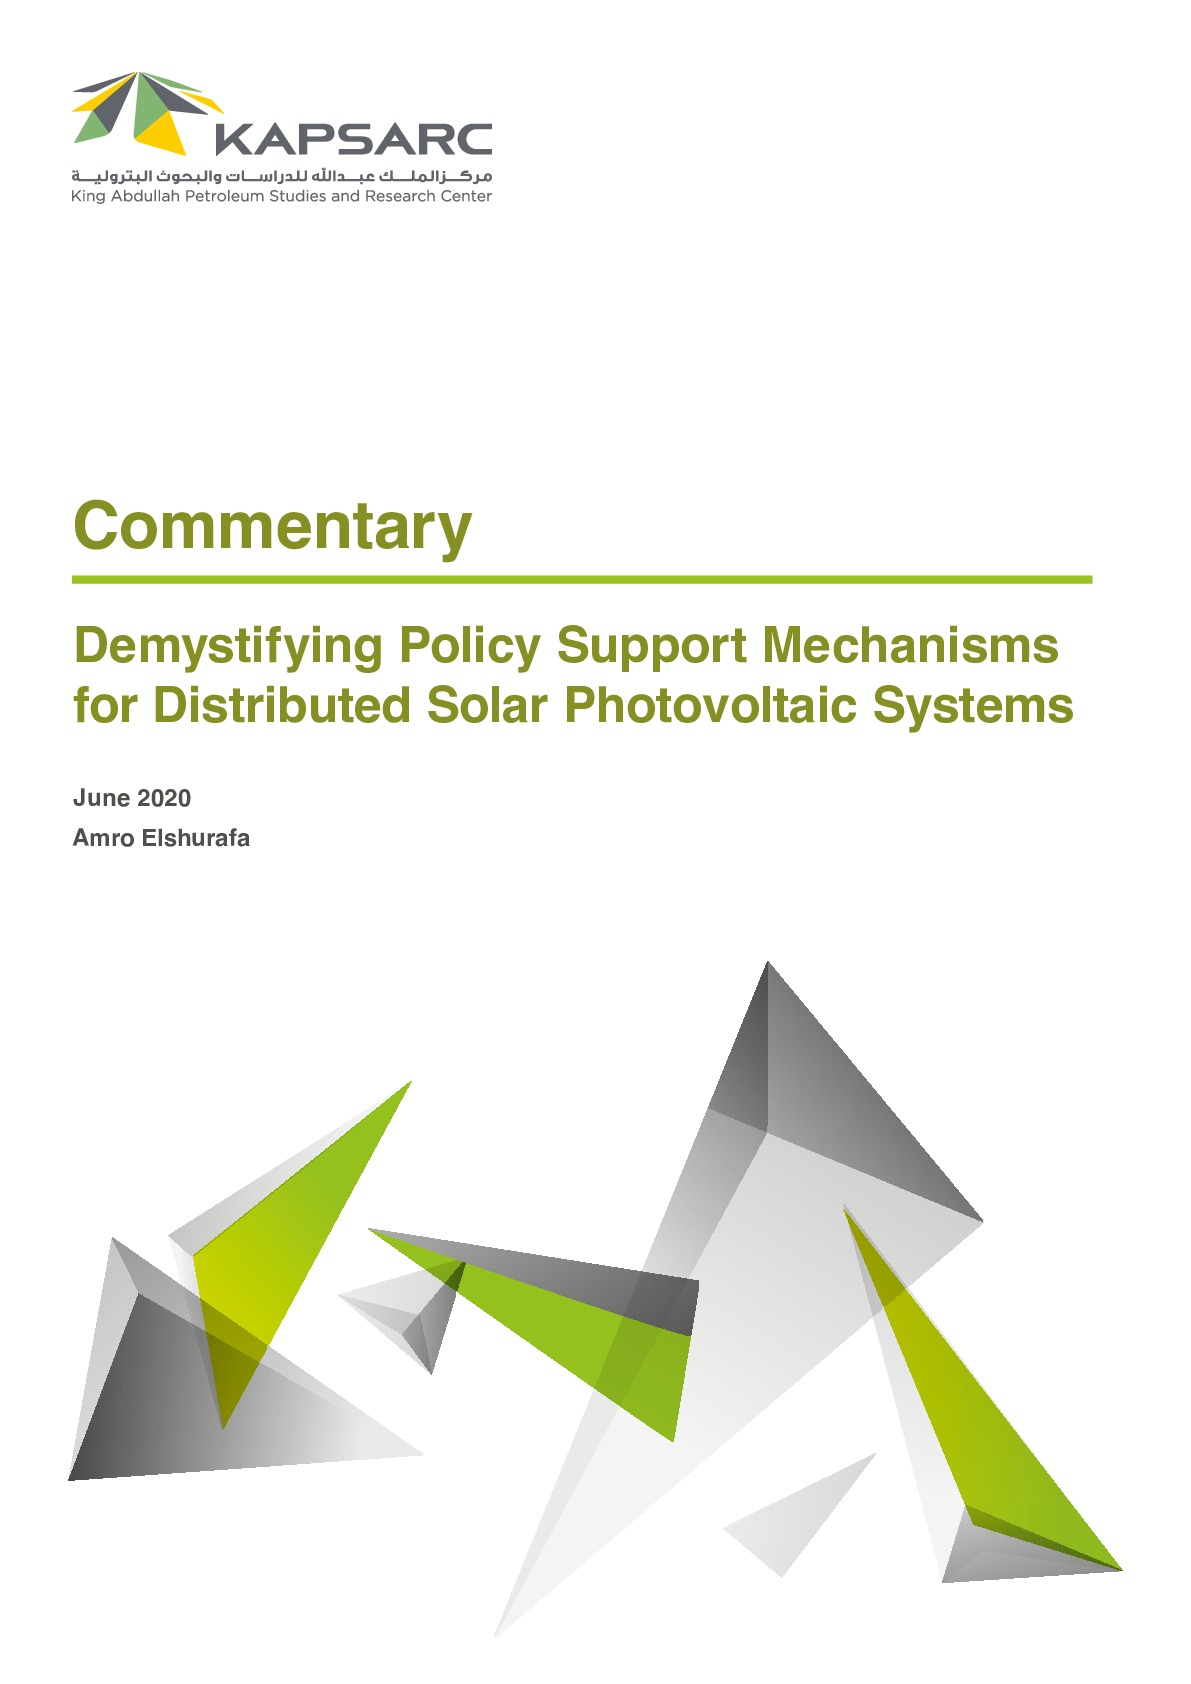 Demystifying Policy Support Mechanisms for Distributed Solar Photovoltaic Systems